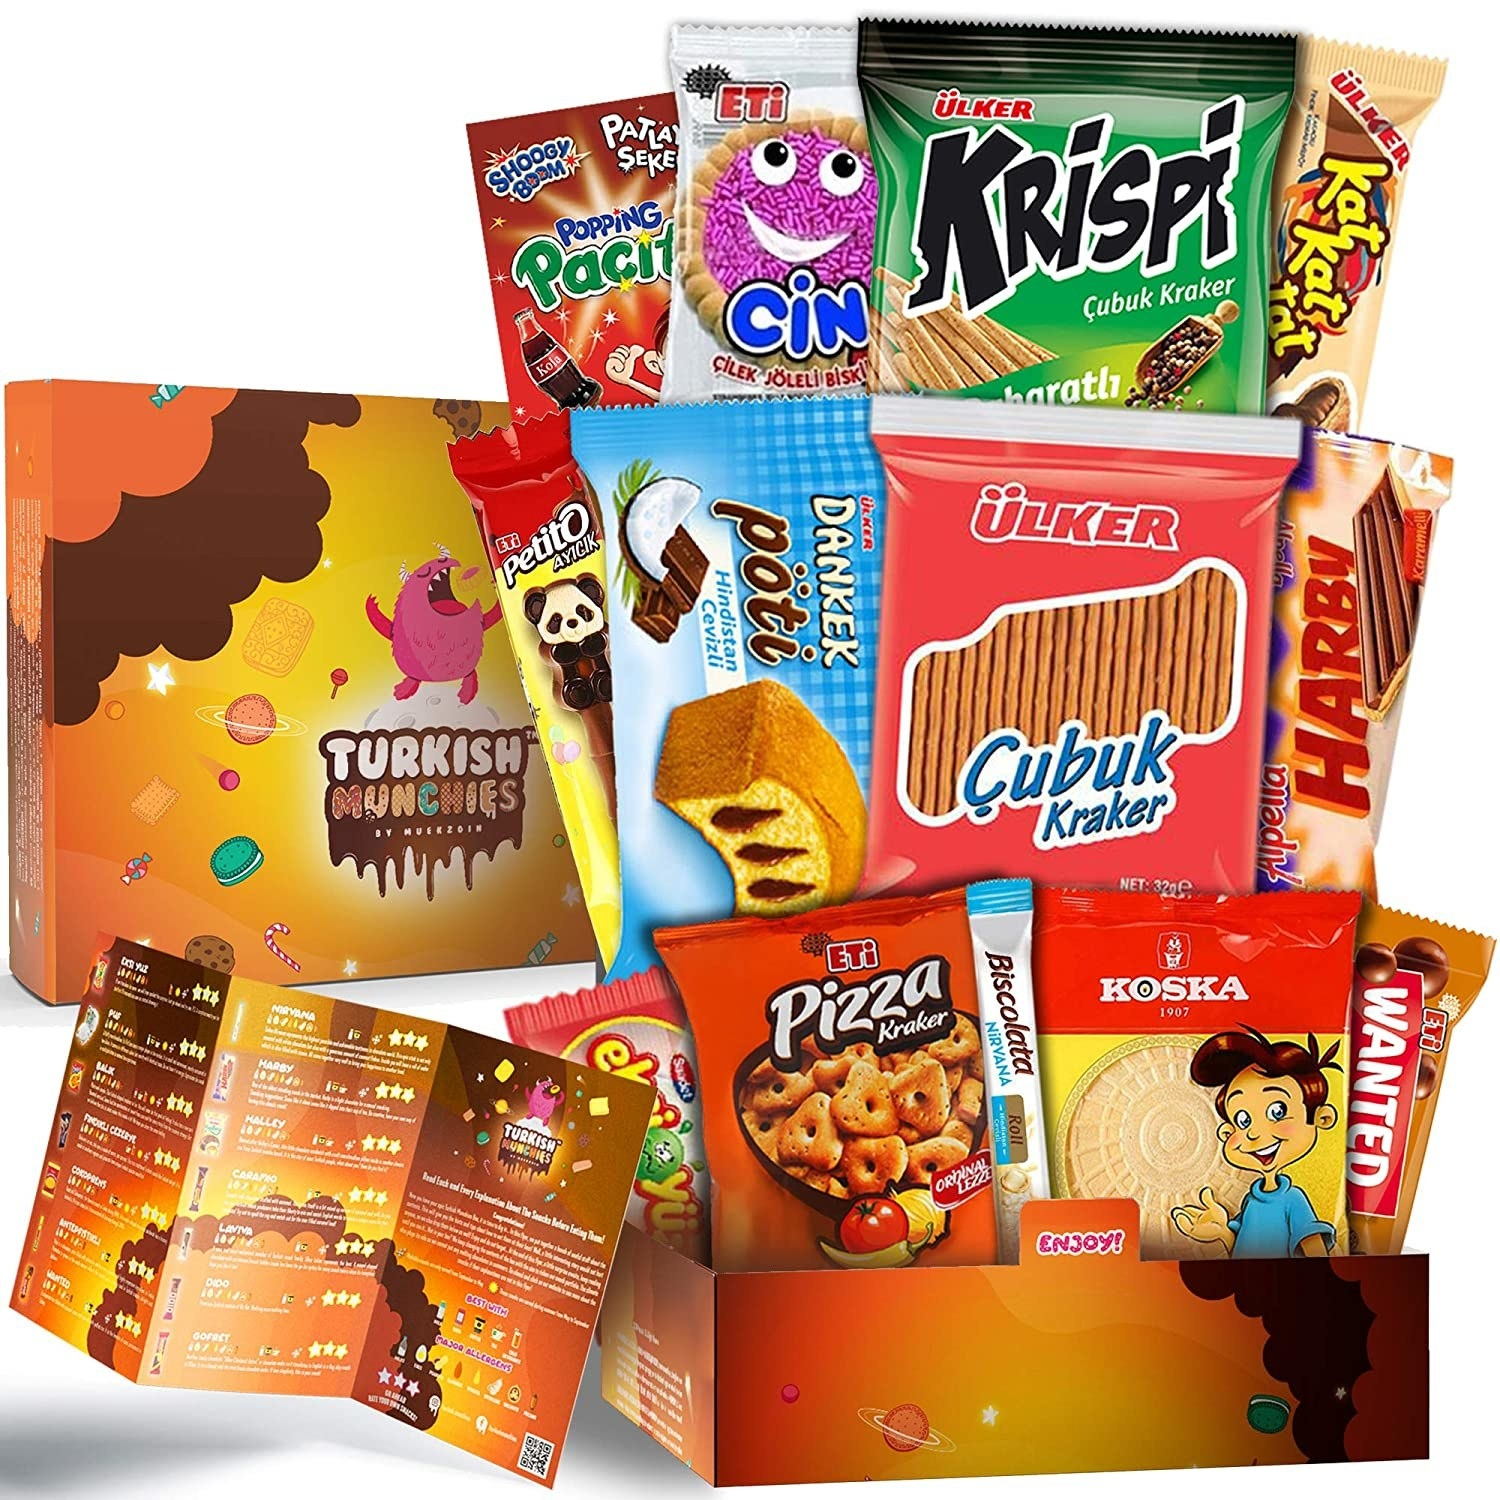 An assortment of snacks in crackers, cakes, and cookies